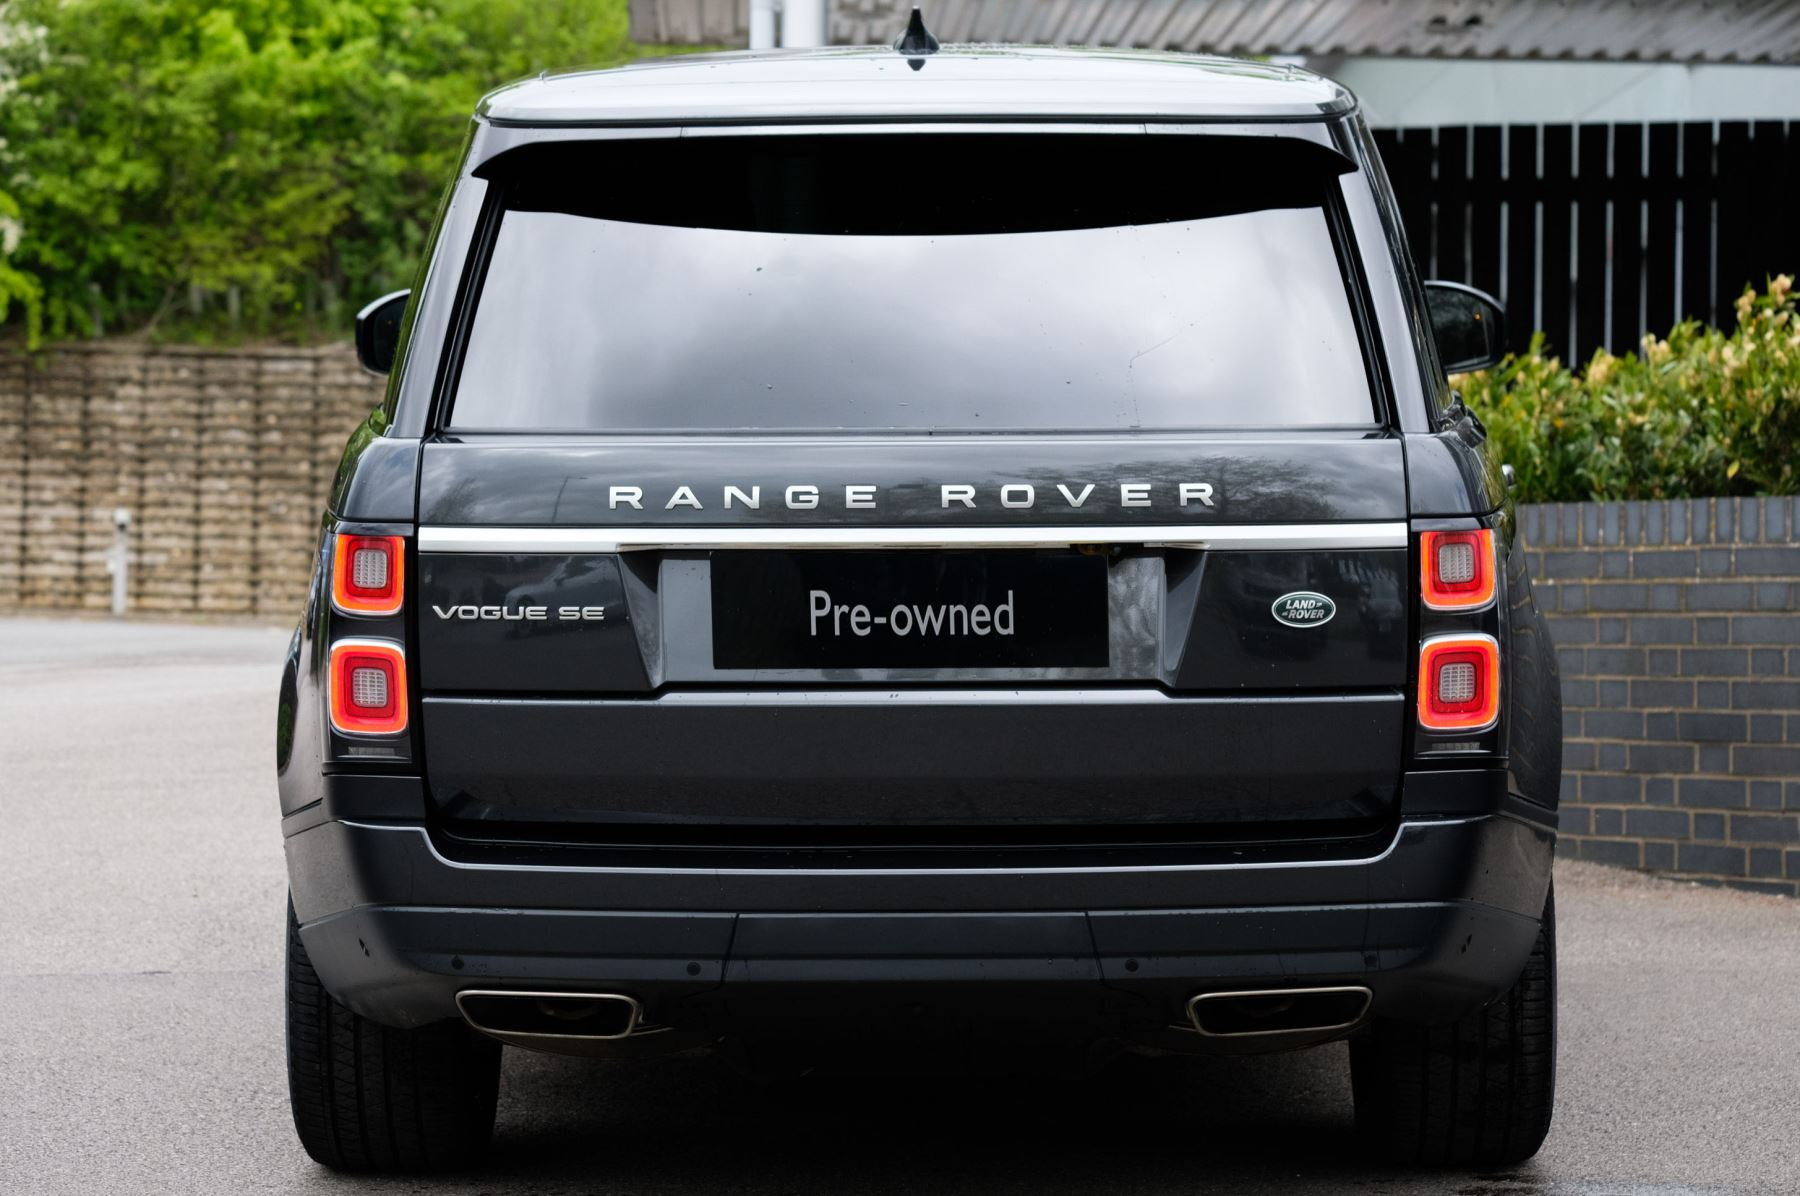 Land Rover Range Rover 3.0 SDV6 Vogue SE - Panoramic Roof - Privacy Glass - 21 inch Alloys image 9